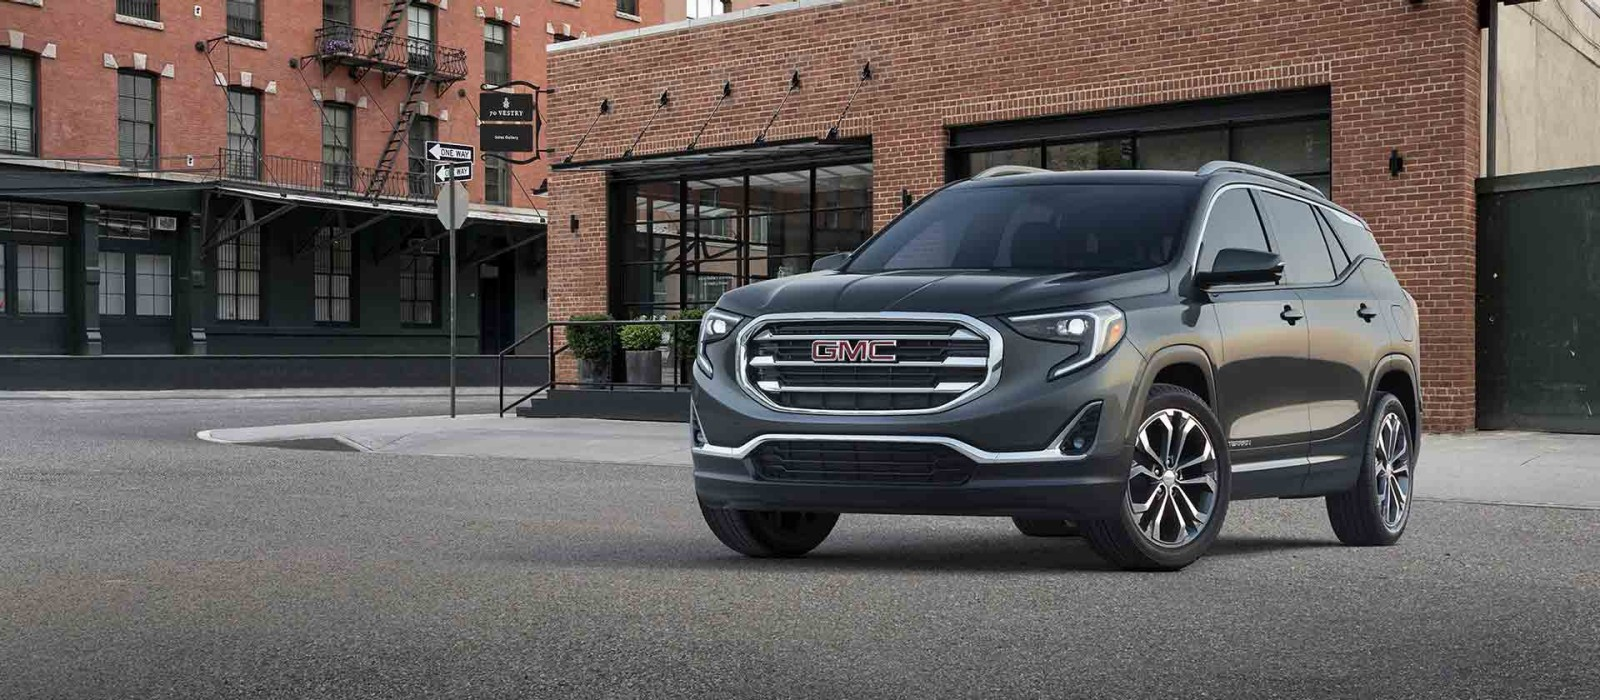 gmc specials dealership ia council h iowa ne bluffs dealers omaha buick in